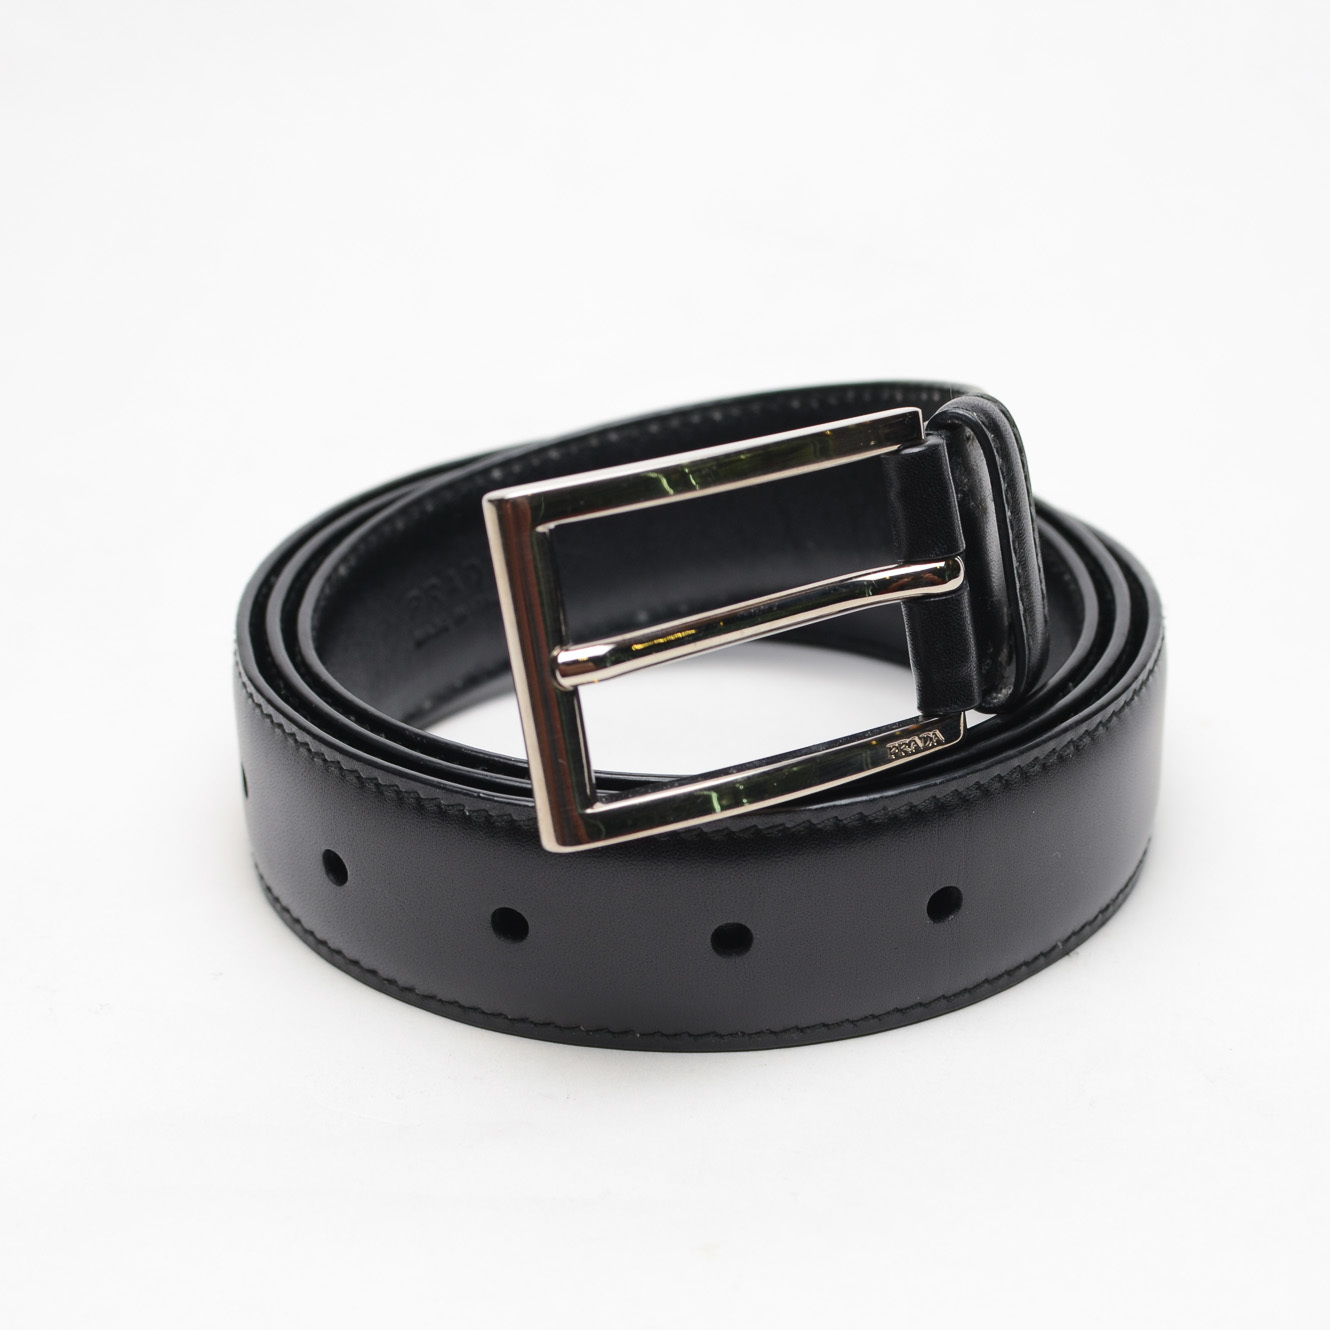 Prada Men\u0026#39;s Belt (Black ) - Mrs. Leather